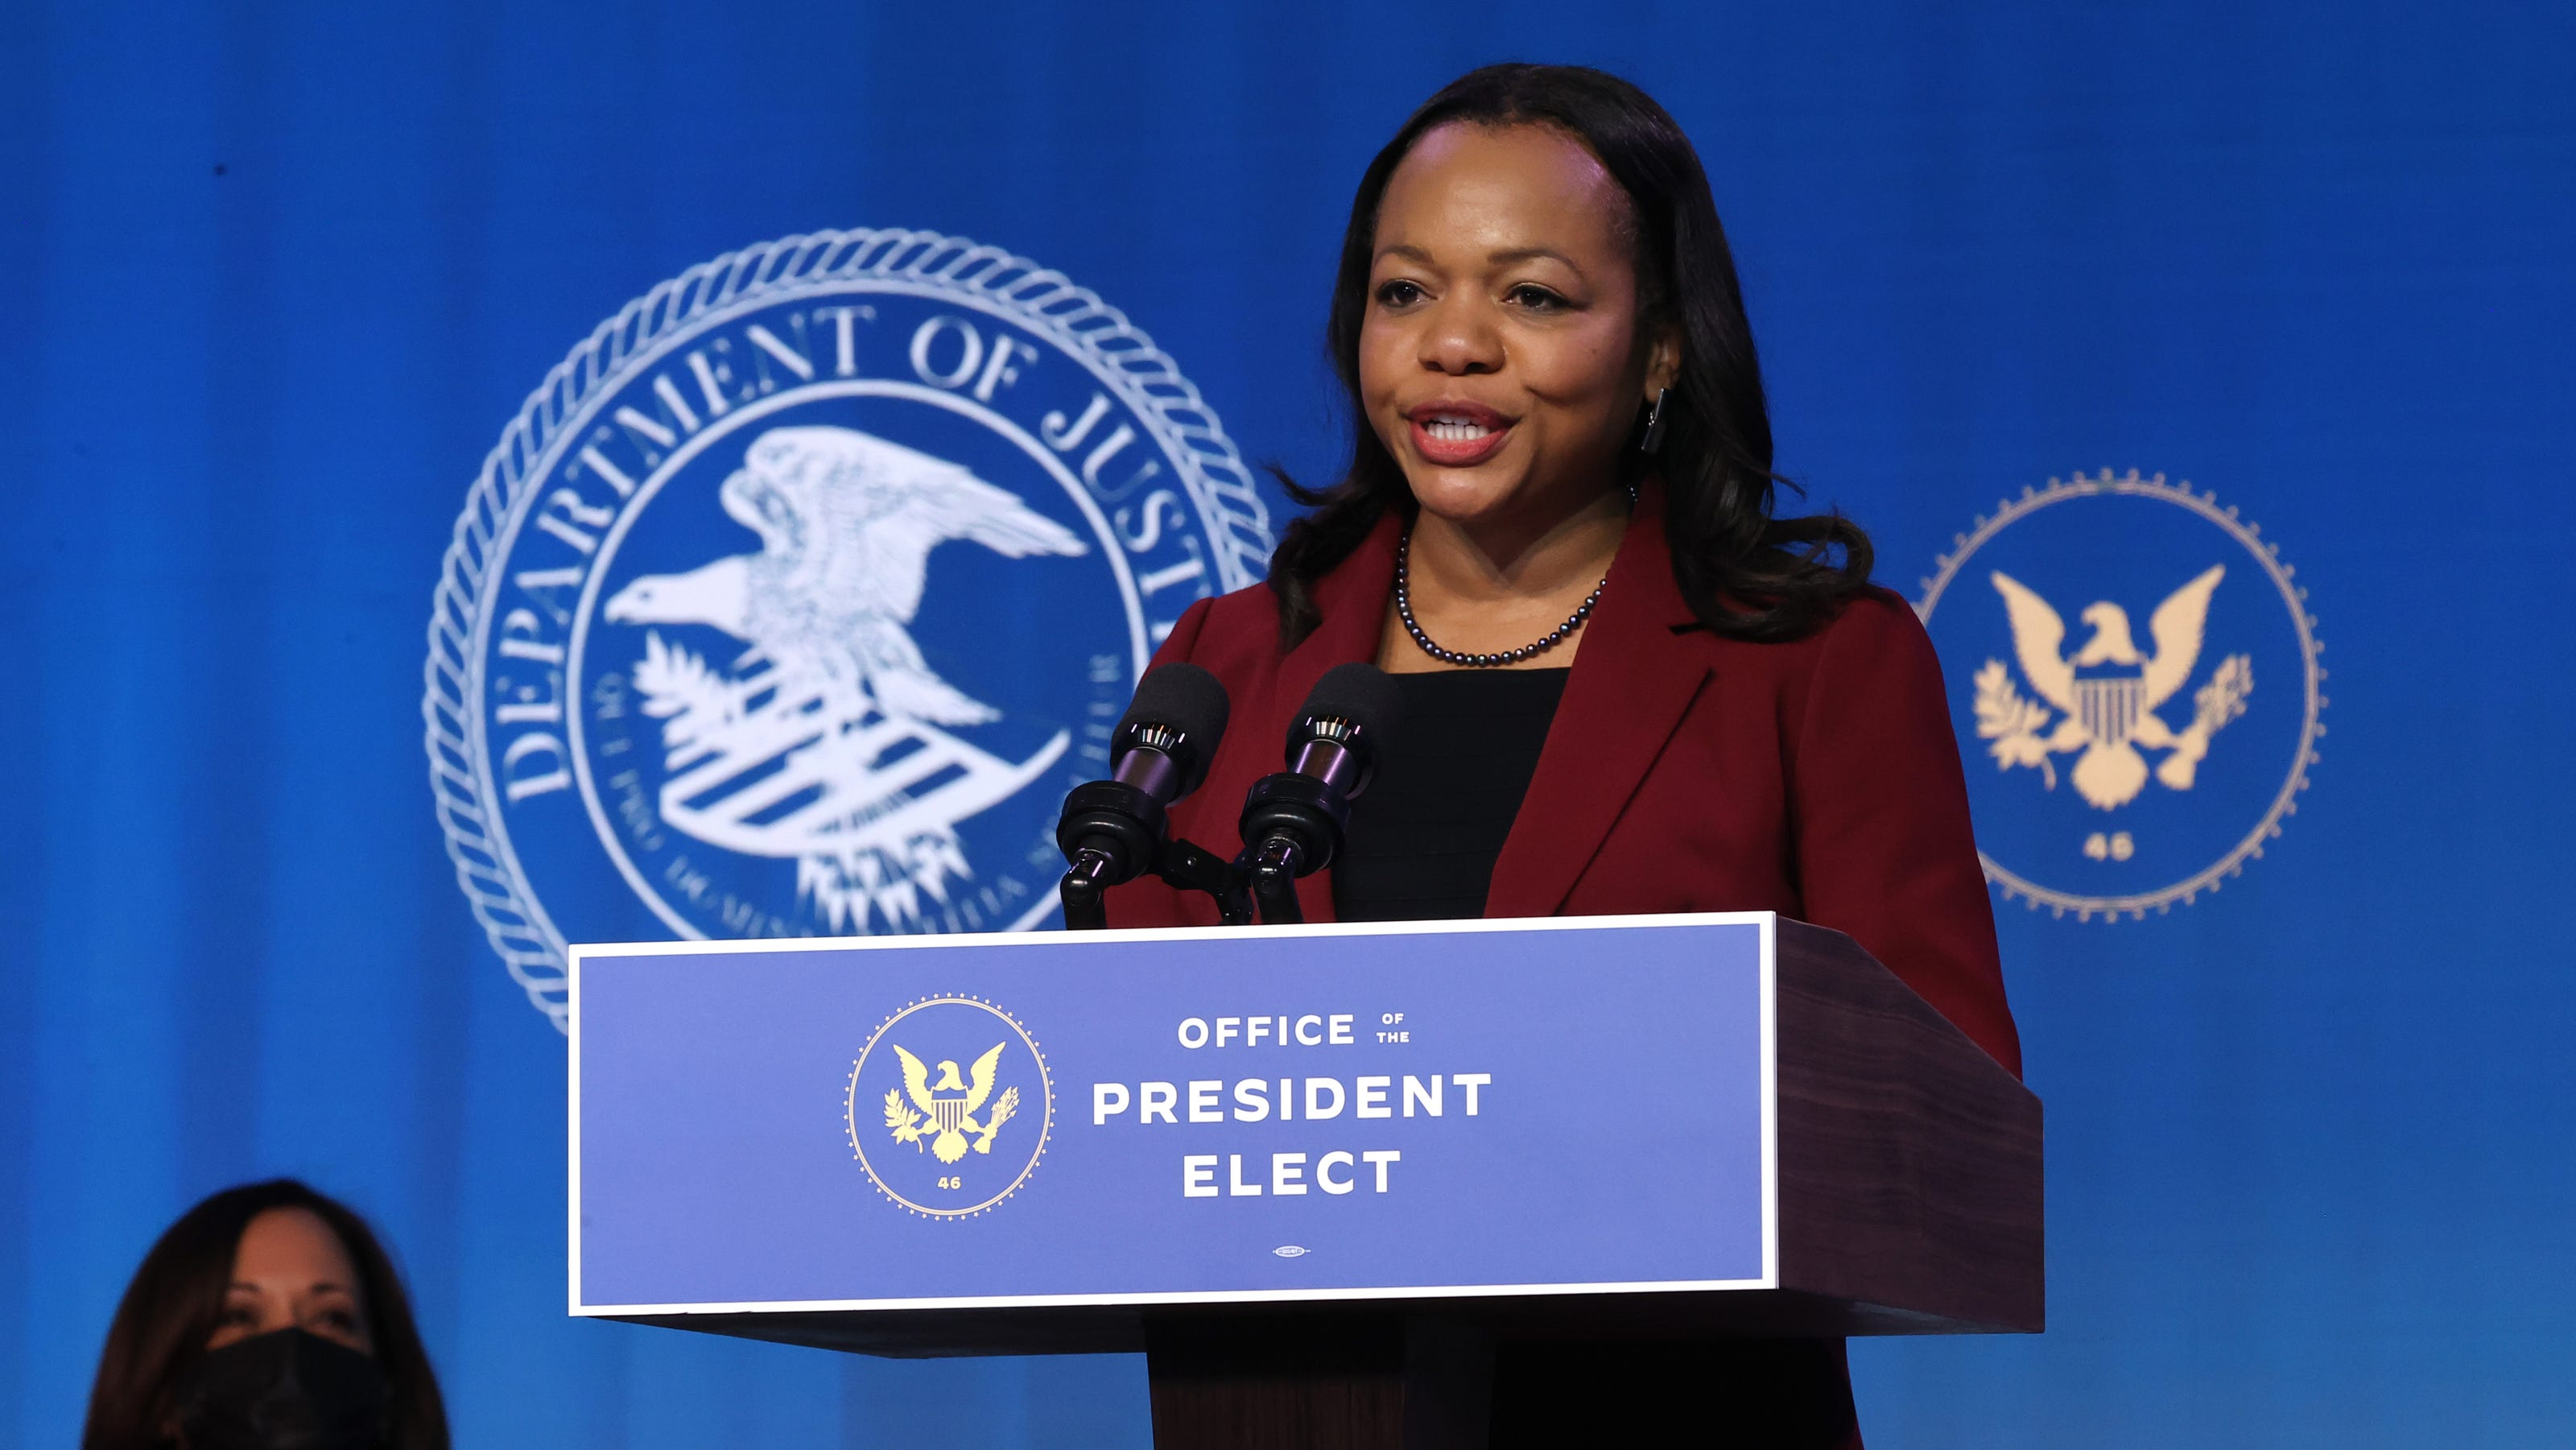 Biden's pick for top civil rights job promises to advance racial equality